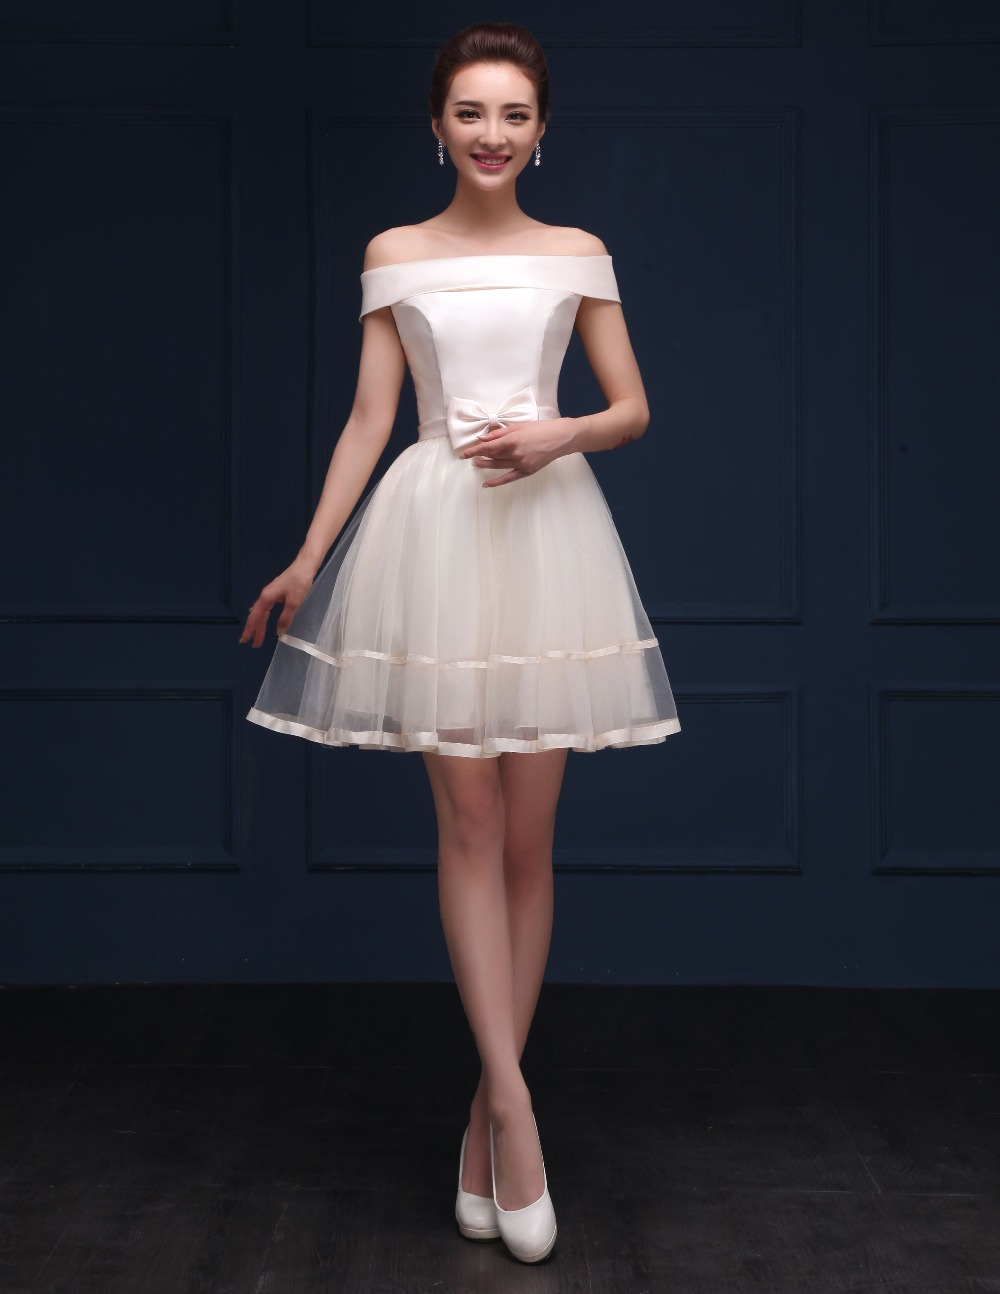 Lansitina 2017 new style net mini bridesmaid dress cheap bow a line lansitina 2017 new style net mini bridesmaid dress cheap bow a line party prom dresses junior bridesmaid dresses in bridesmaid dresses from weddings ombrellifo Image collections